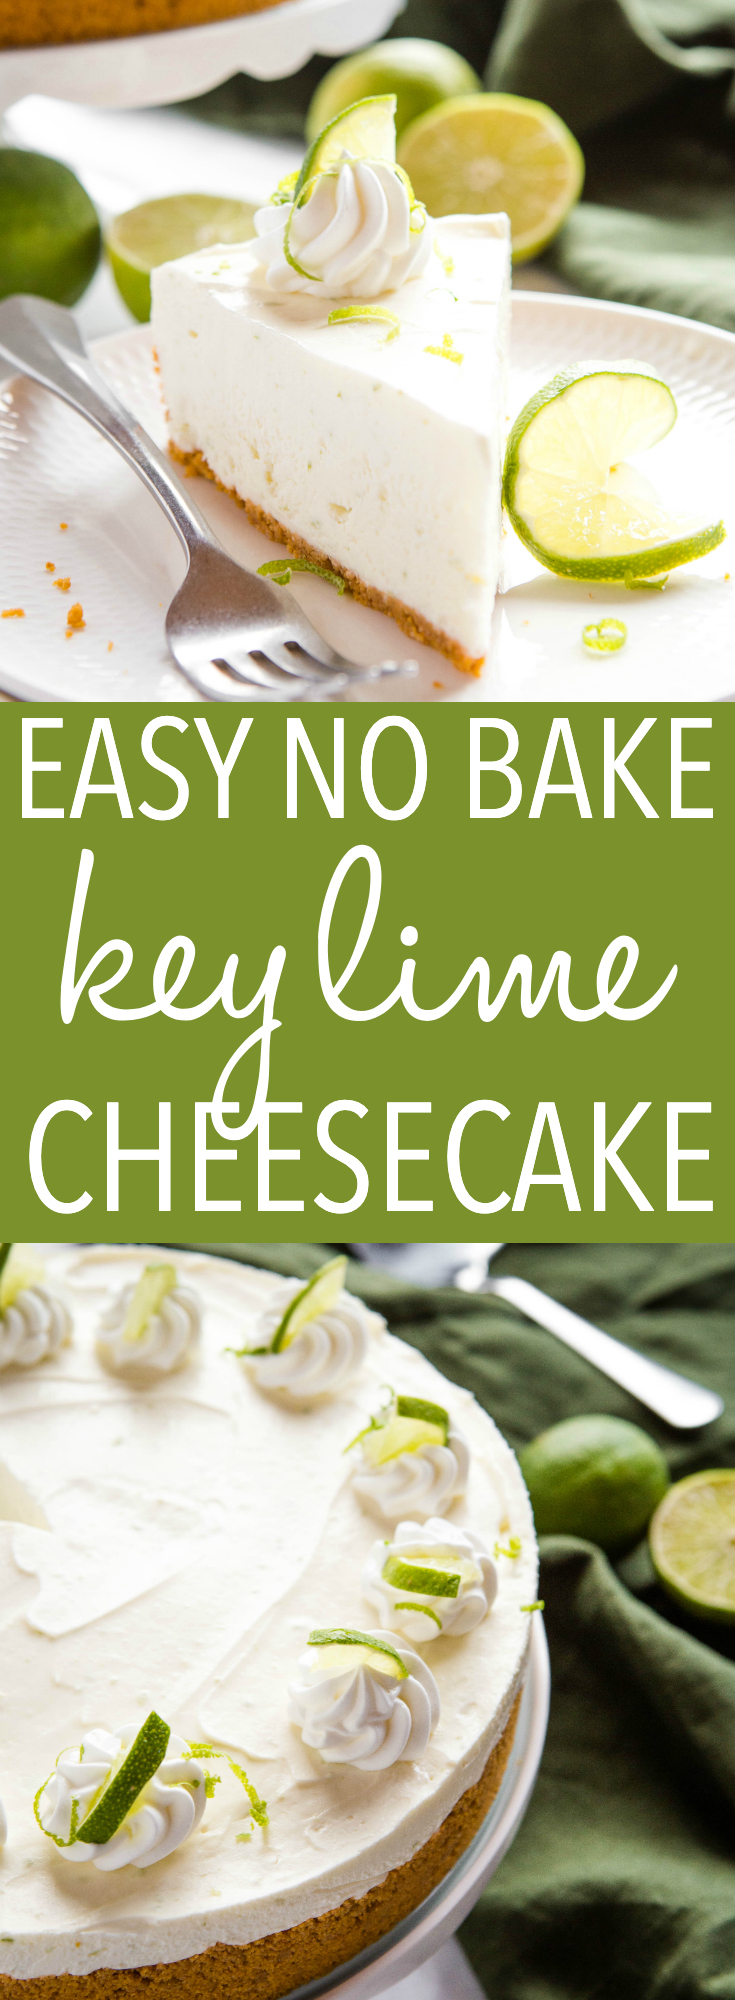 This Easy No Bake Key Lime Cheesecake is the perfect easy-to-make cheesecake dessert that's ultra creamy and delicious and packed with fresh lime flavour! Recipe from thebusybaker.ca! #keylimepie #keylime #cheesecake #nobakecheesecake #nobake #summer #dessert #sweet via @busybakerblog